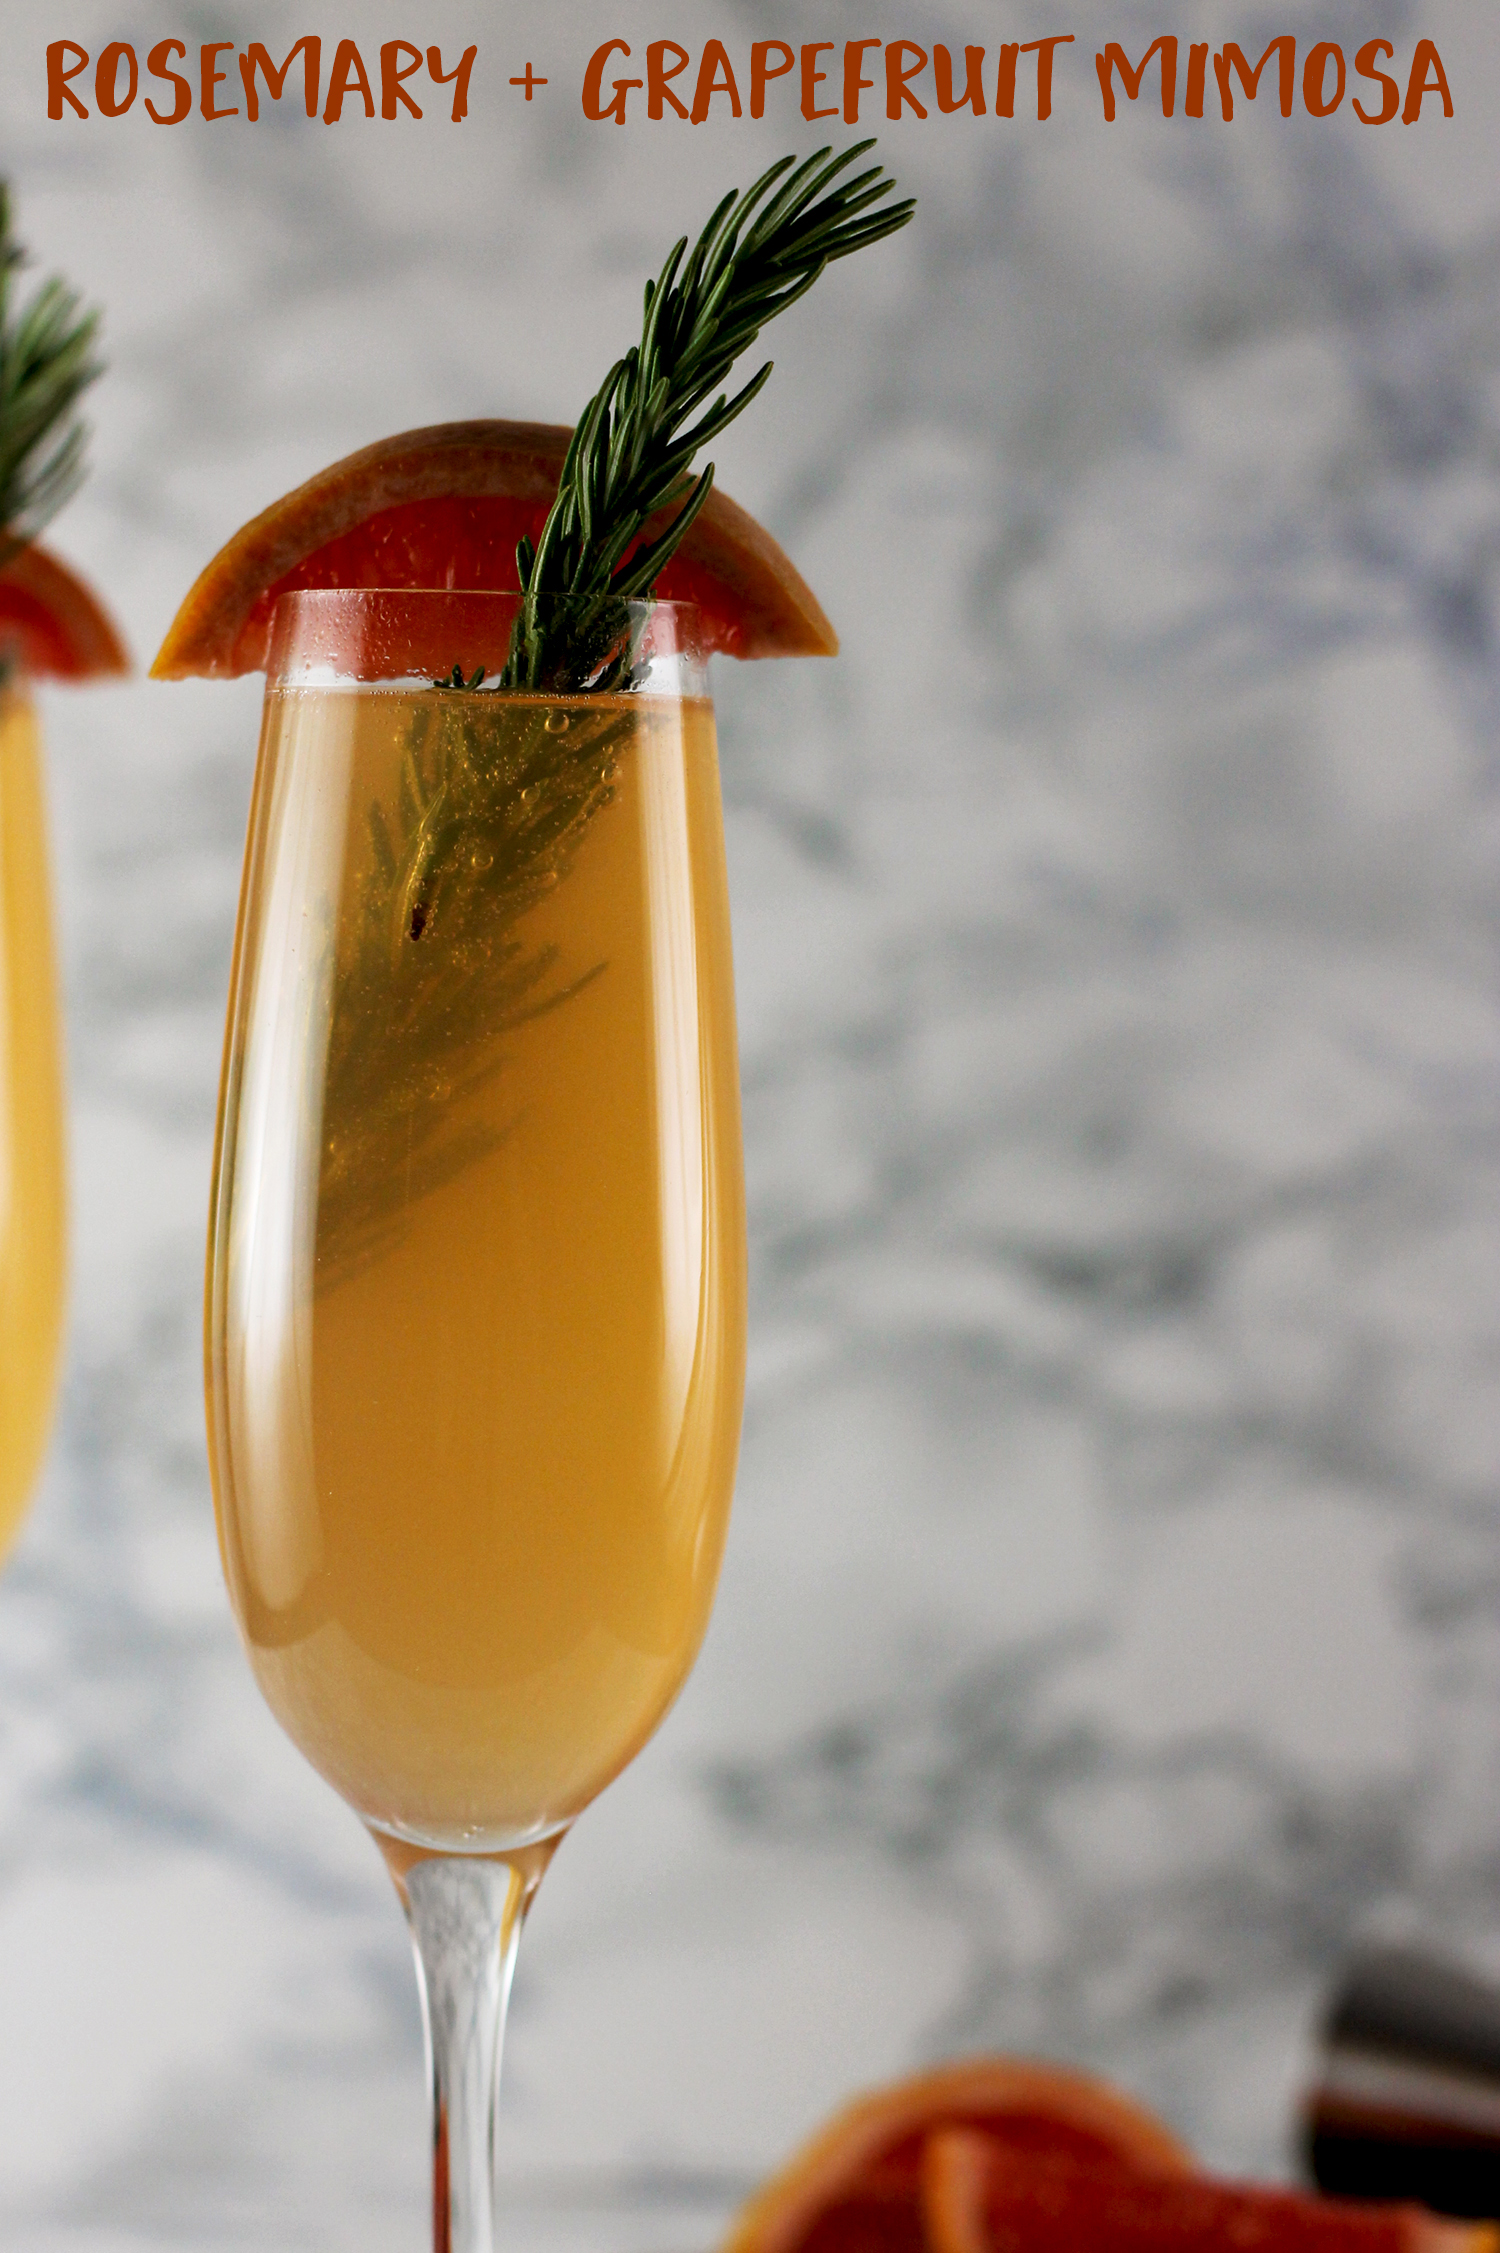 This rosemary and grapefruit cocktail is the perfect brunch drink recipe! It's light, fresh tasting and easy to make!